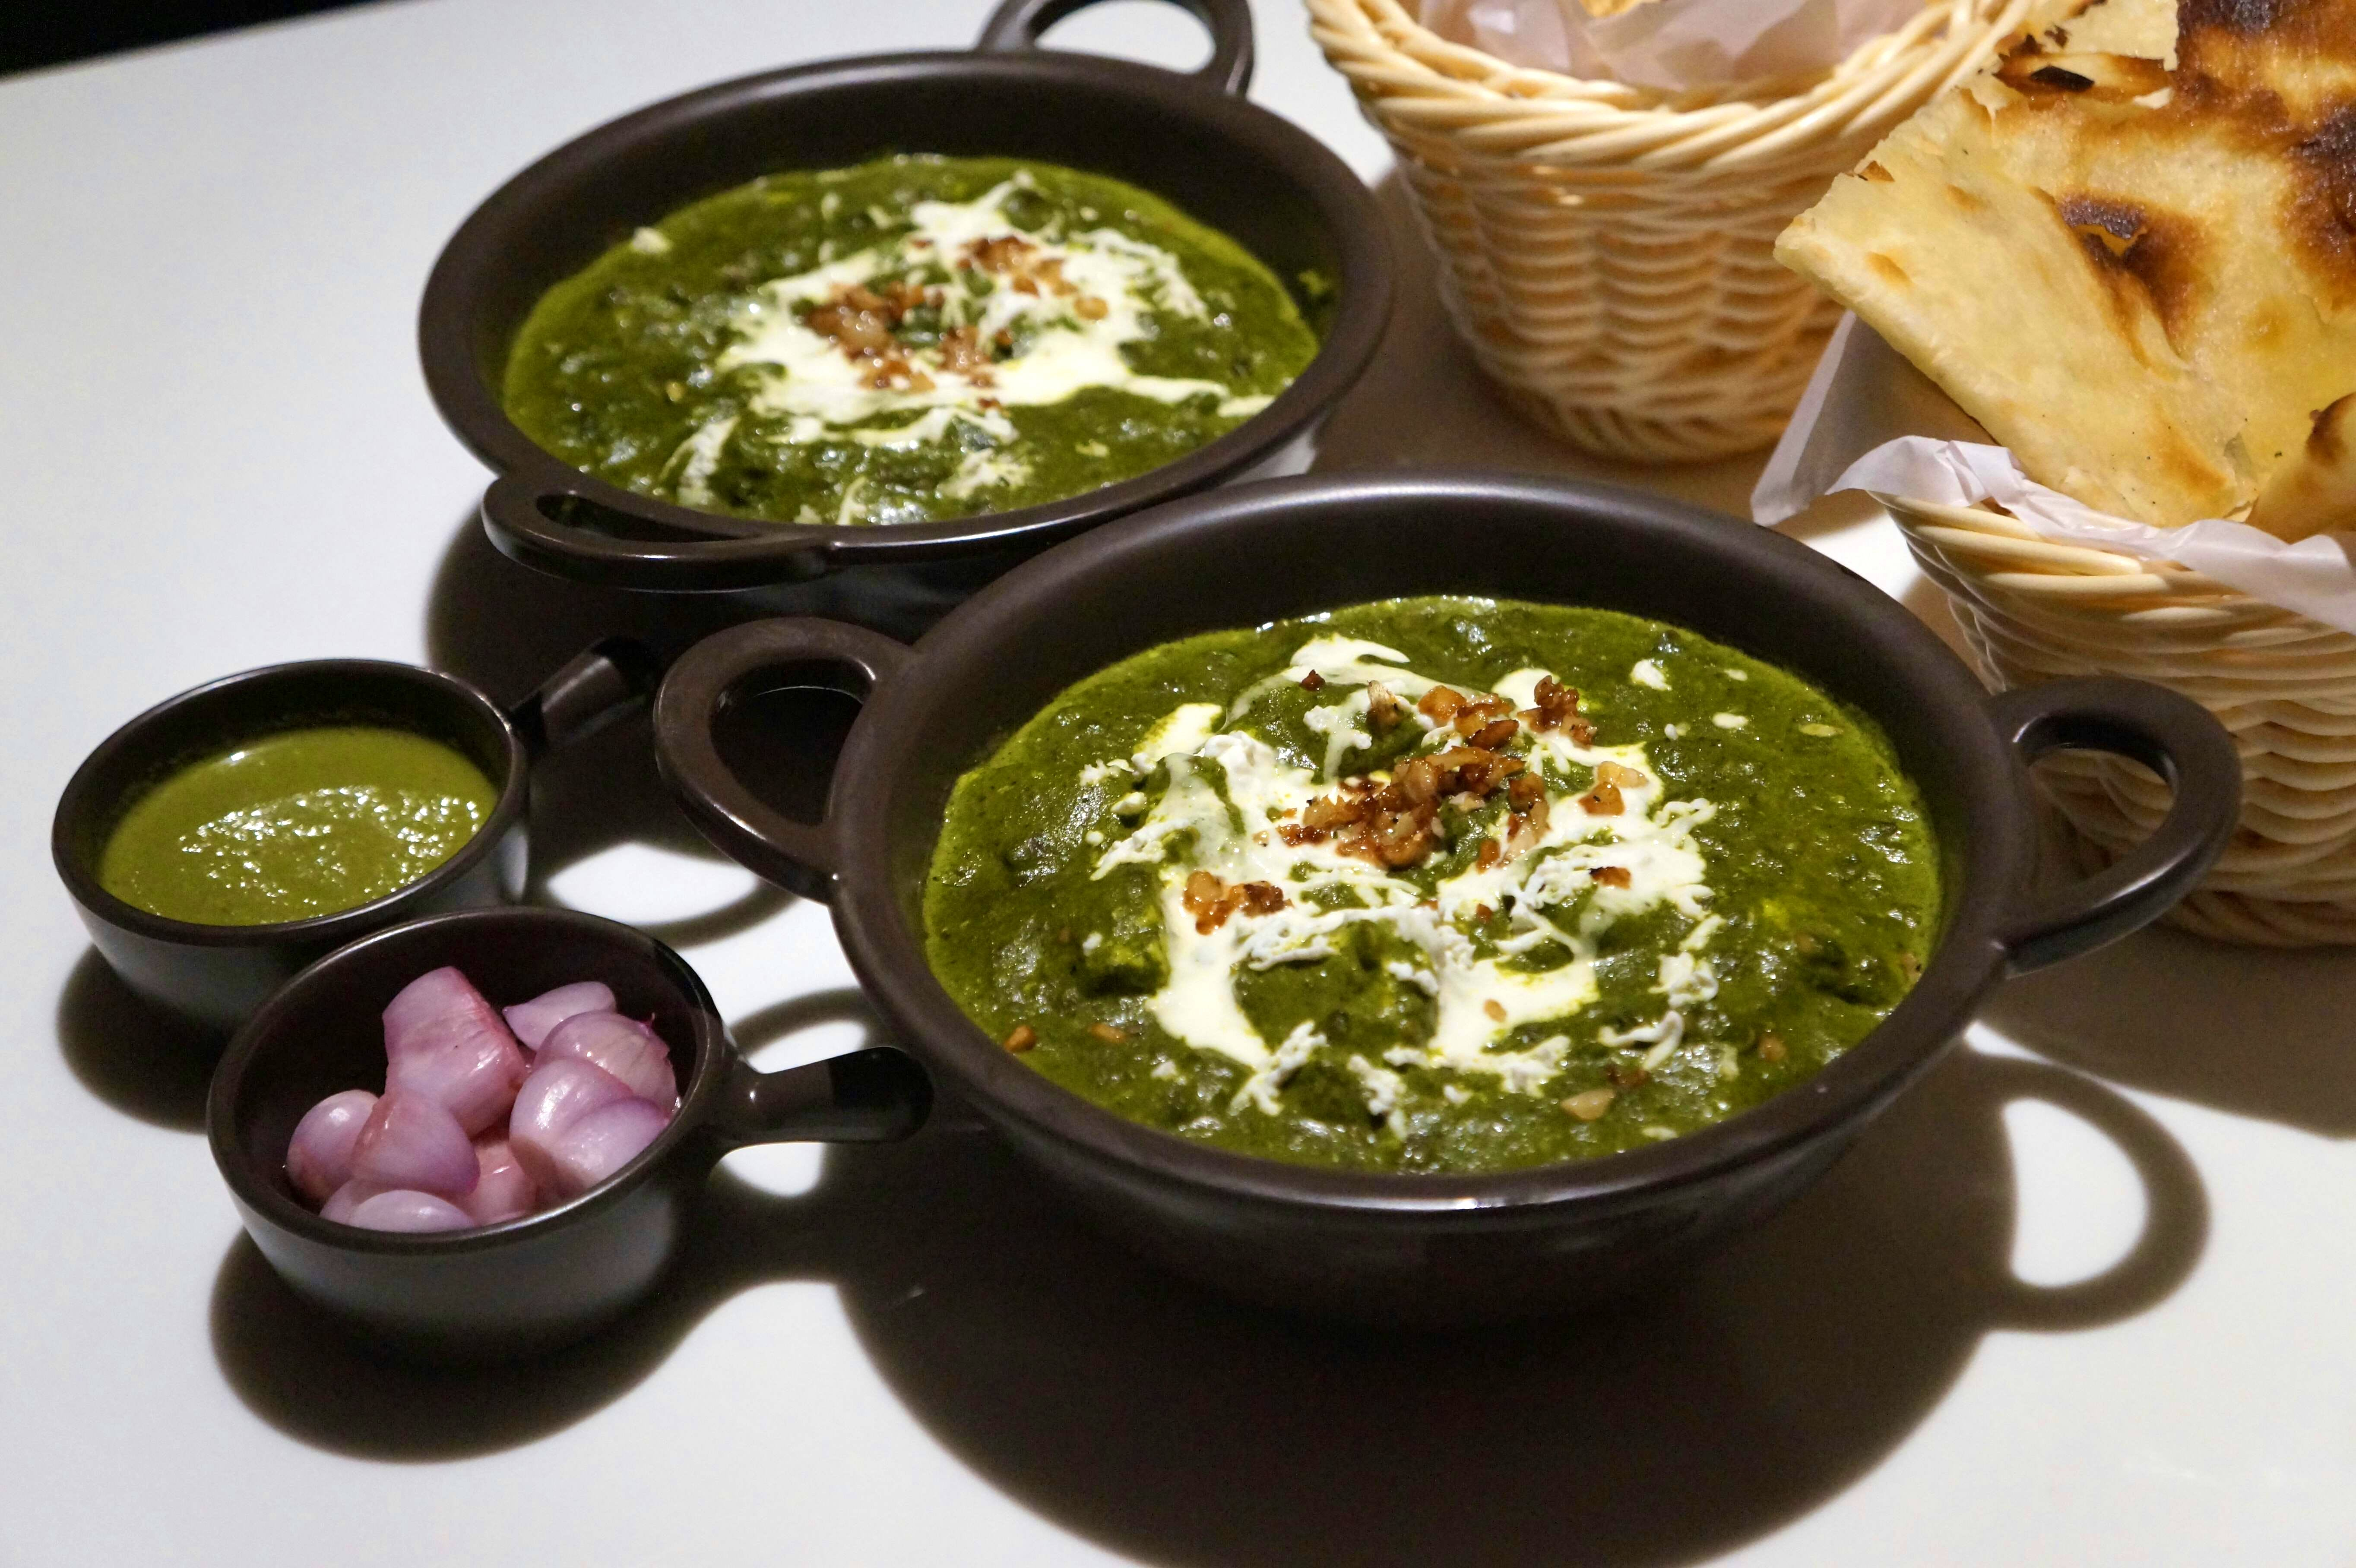 Dish,Food,Cuisine,Ingredient,Raita,Produce,Recipe,Meal,Vegetarian food,Indian cuisine